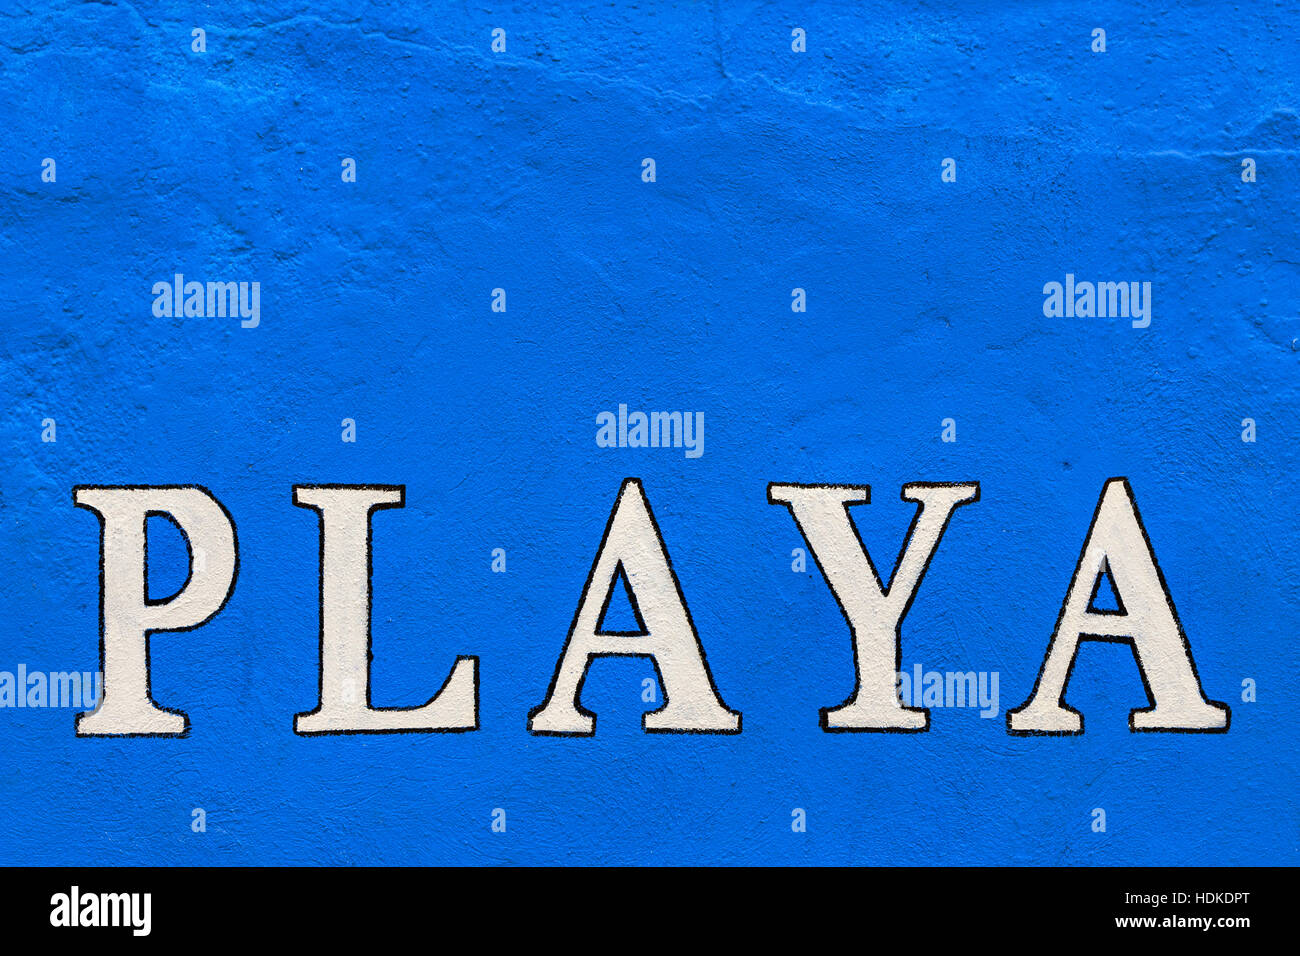 White 'playa' sign painted on a blue wall. Horizontal image. - Stock Image